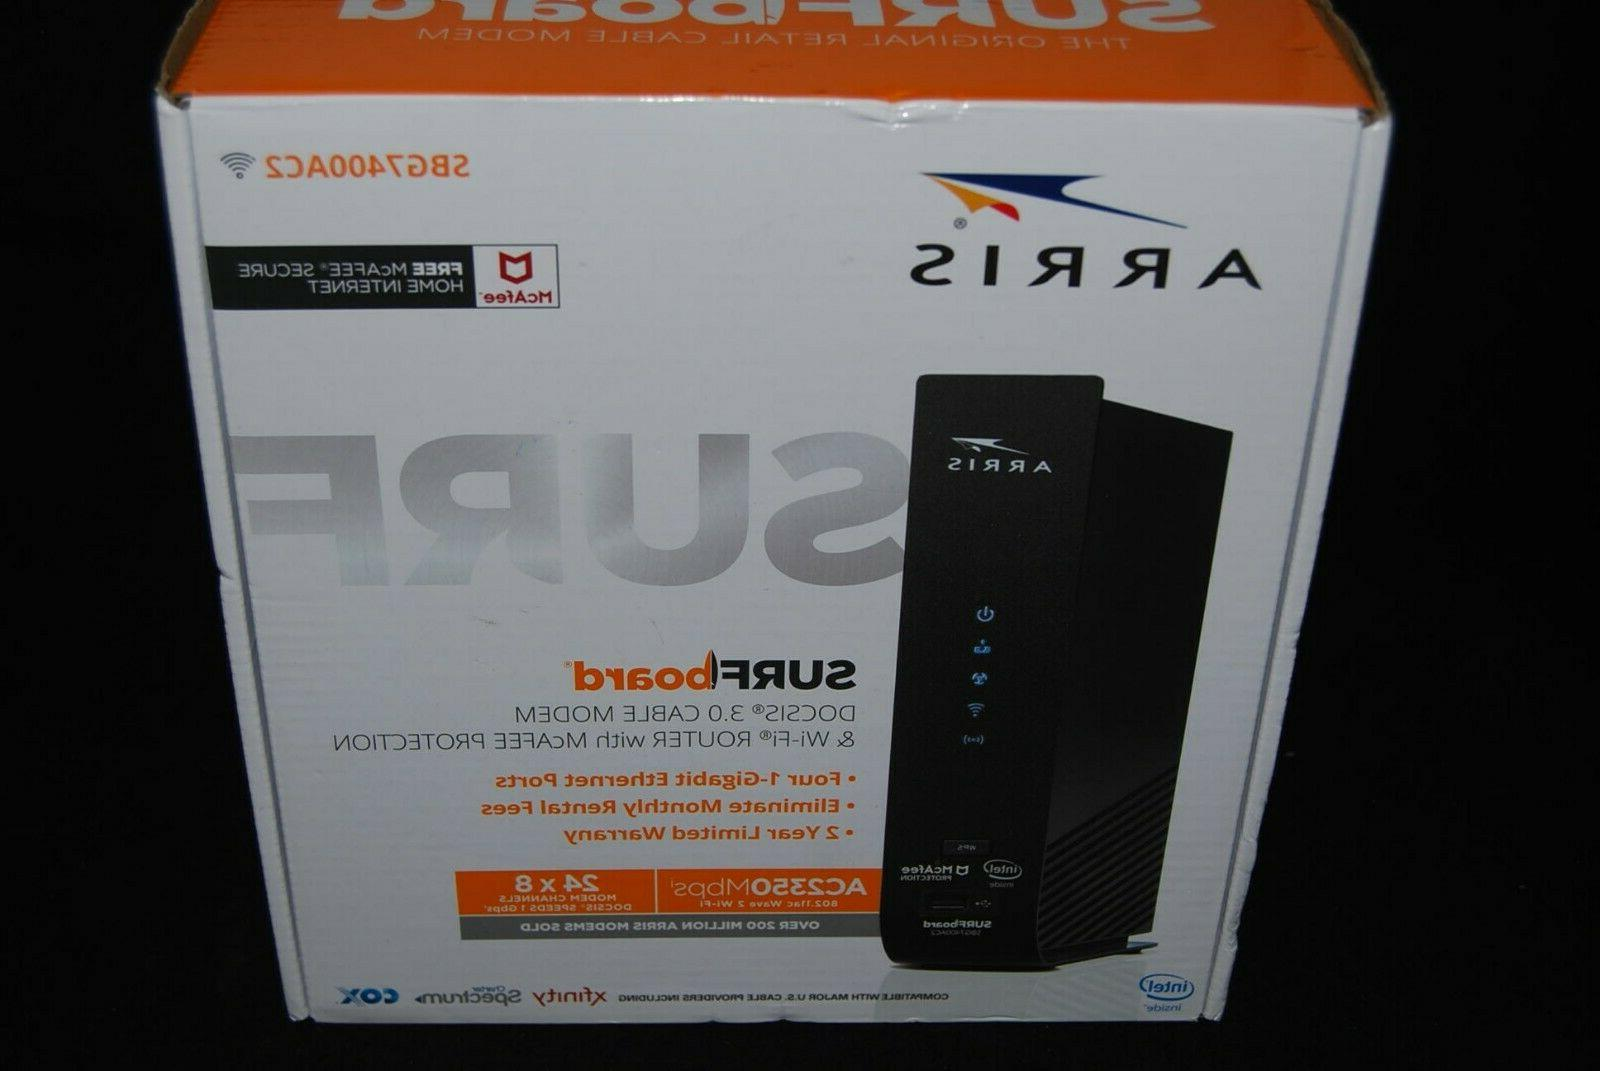 surfboard 2350mbps 4 ports 1000mbps cable modem